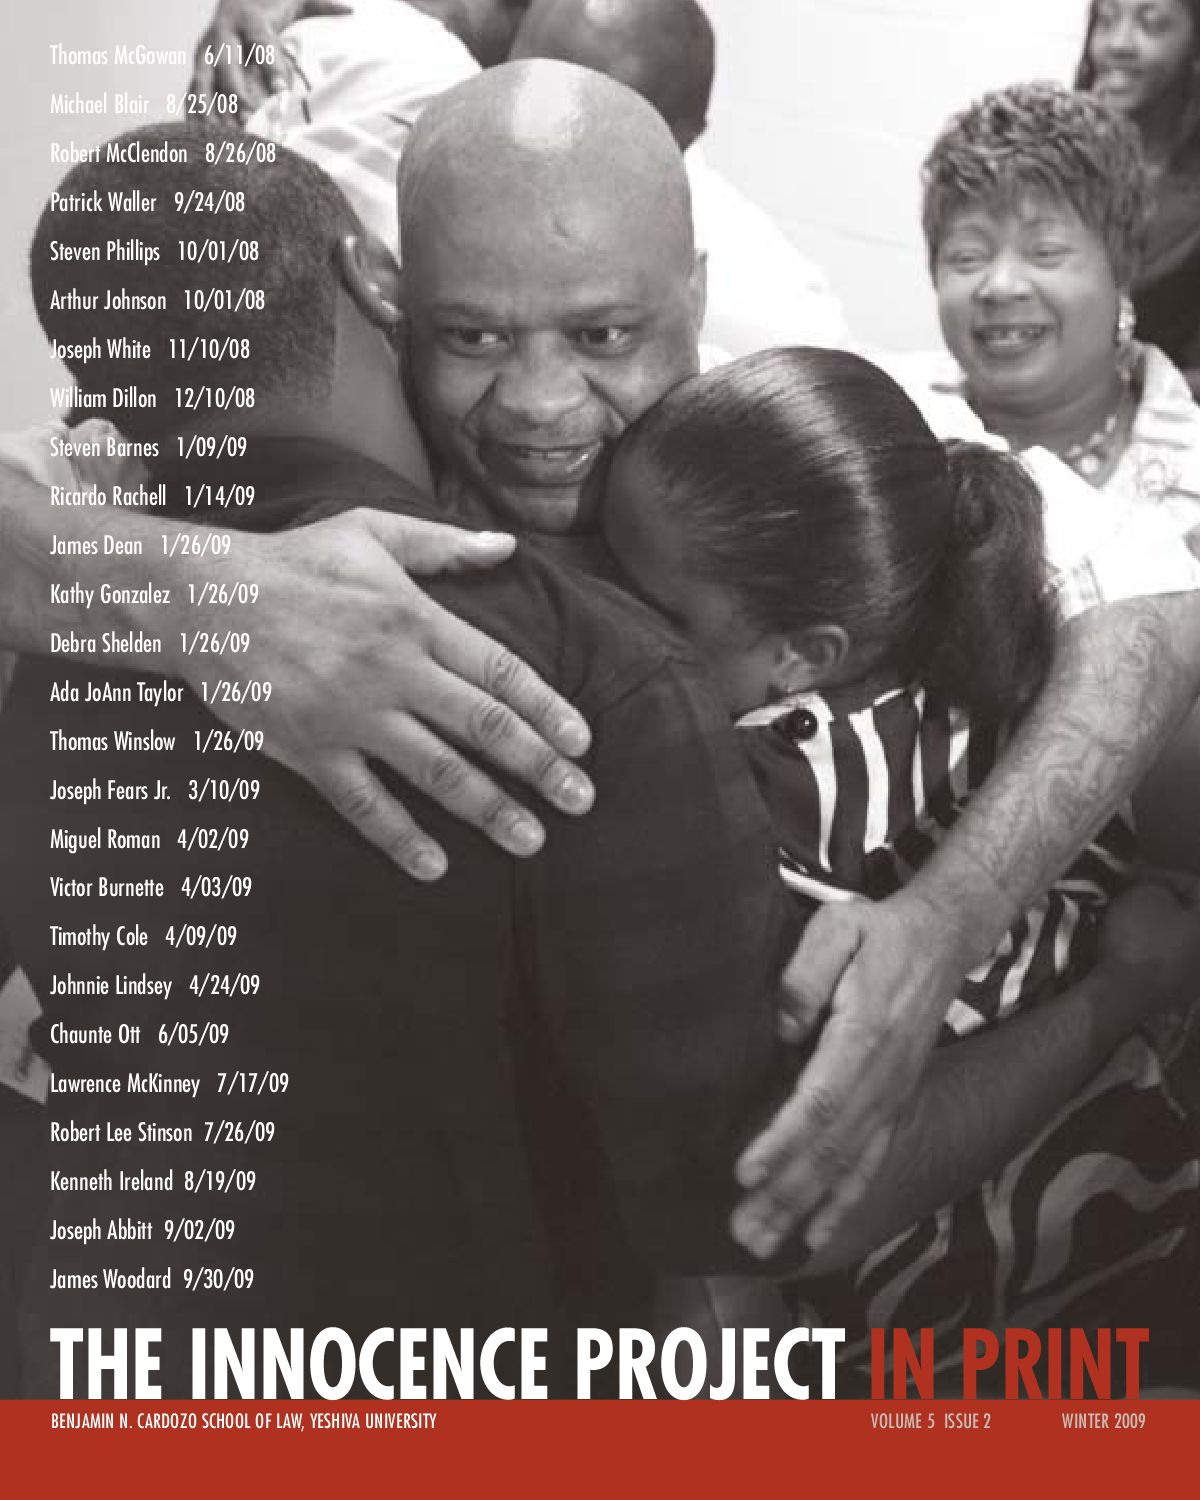 the innocence project The innocence project of minnesota represents people who were wrongfully convicted for crimes they did not commit in minnesota, north dakota, and south dakota.